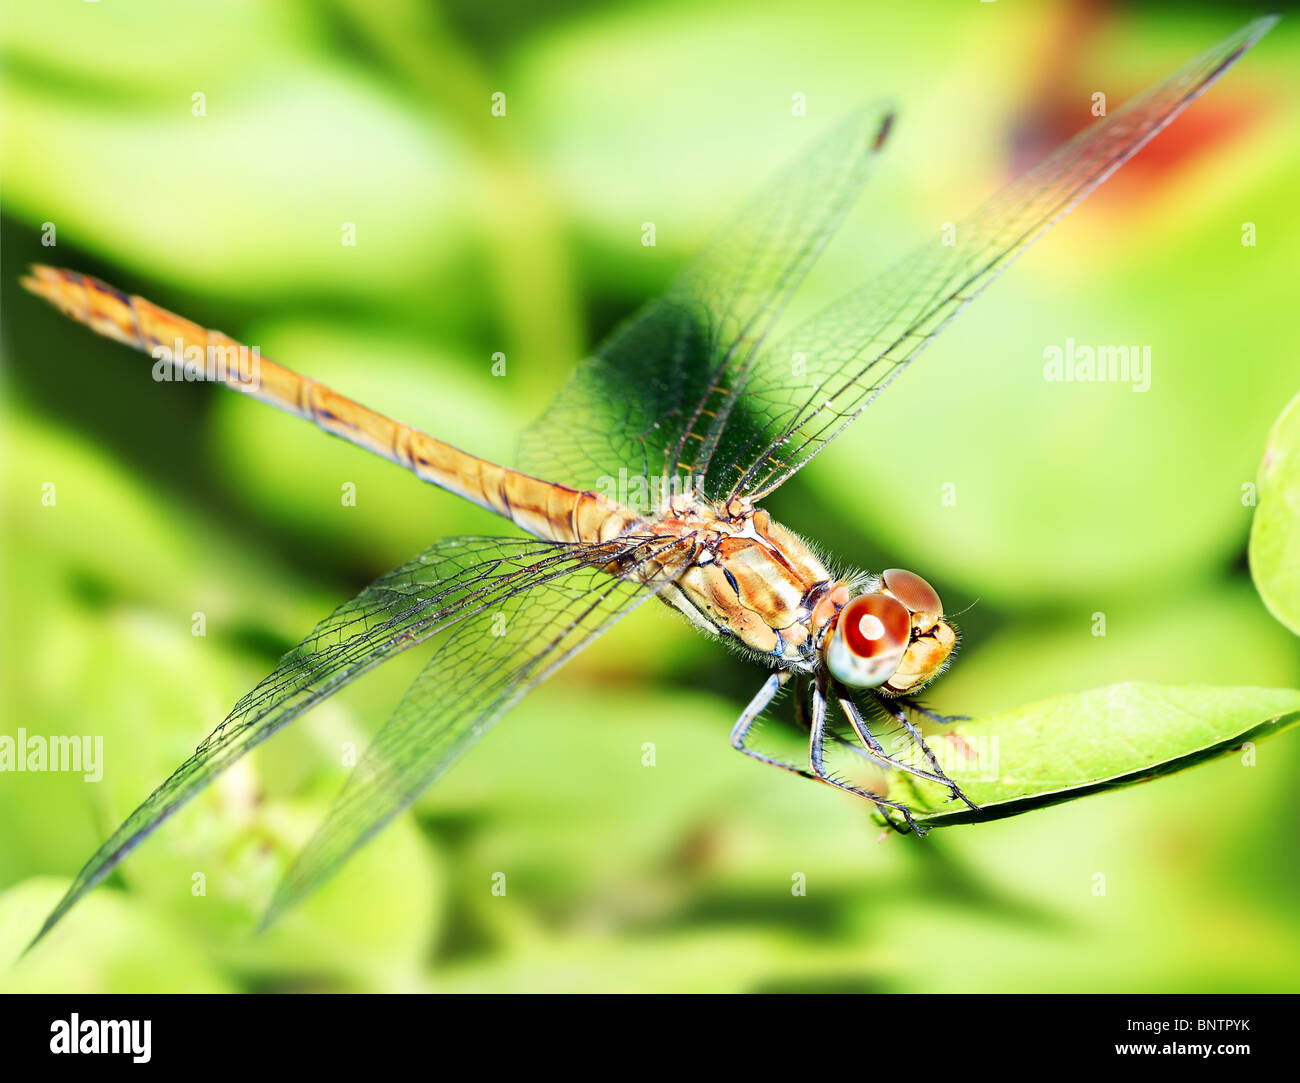 Closeup portrait of a beautiful colorful dragonfly - Stock Image